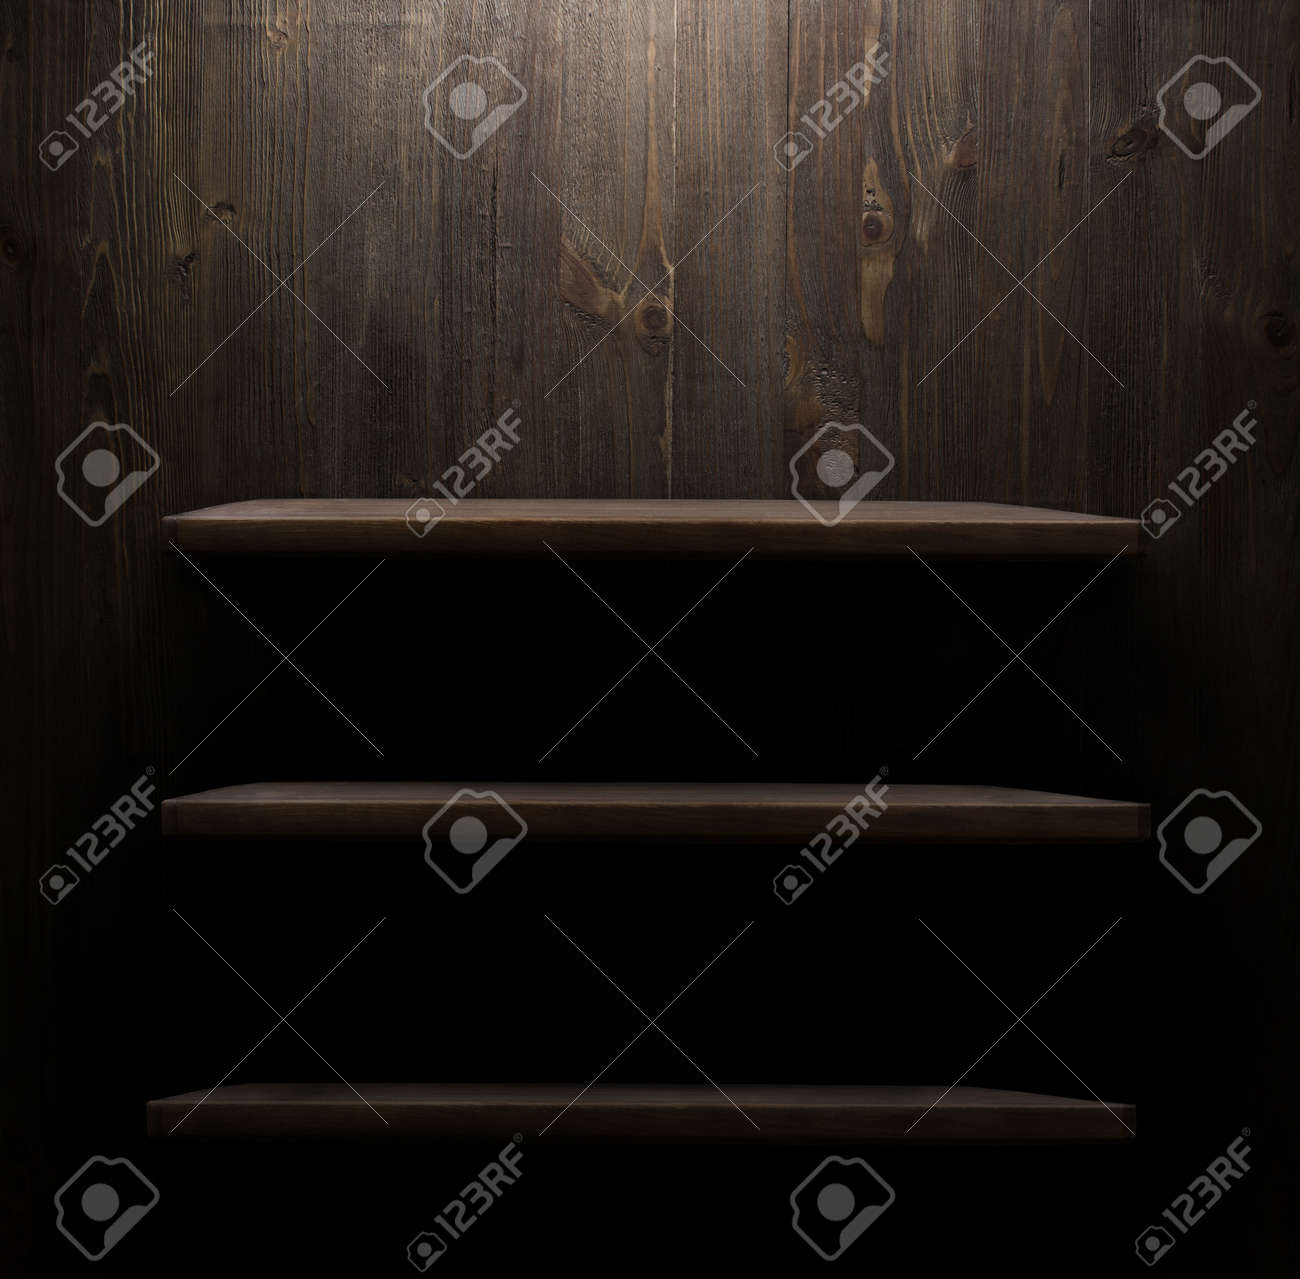 Dark Wooden Background Texture. Wood Shelf Grunge Industrial Interior Stock  Photo   41304512